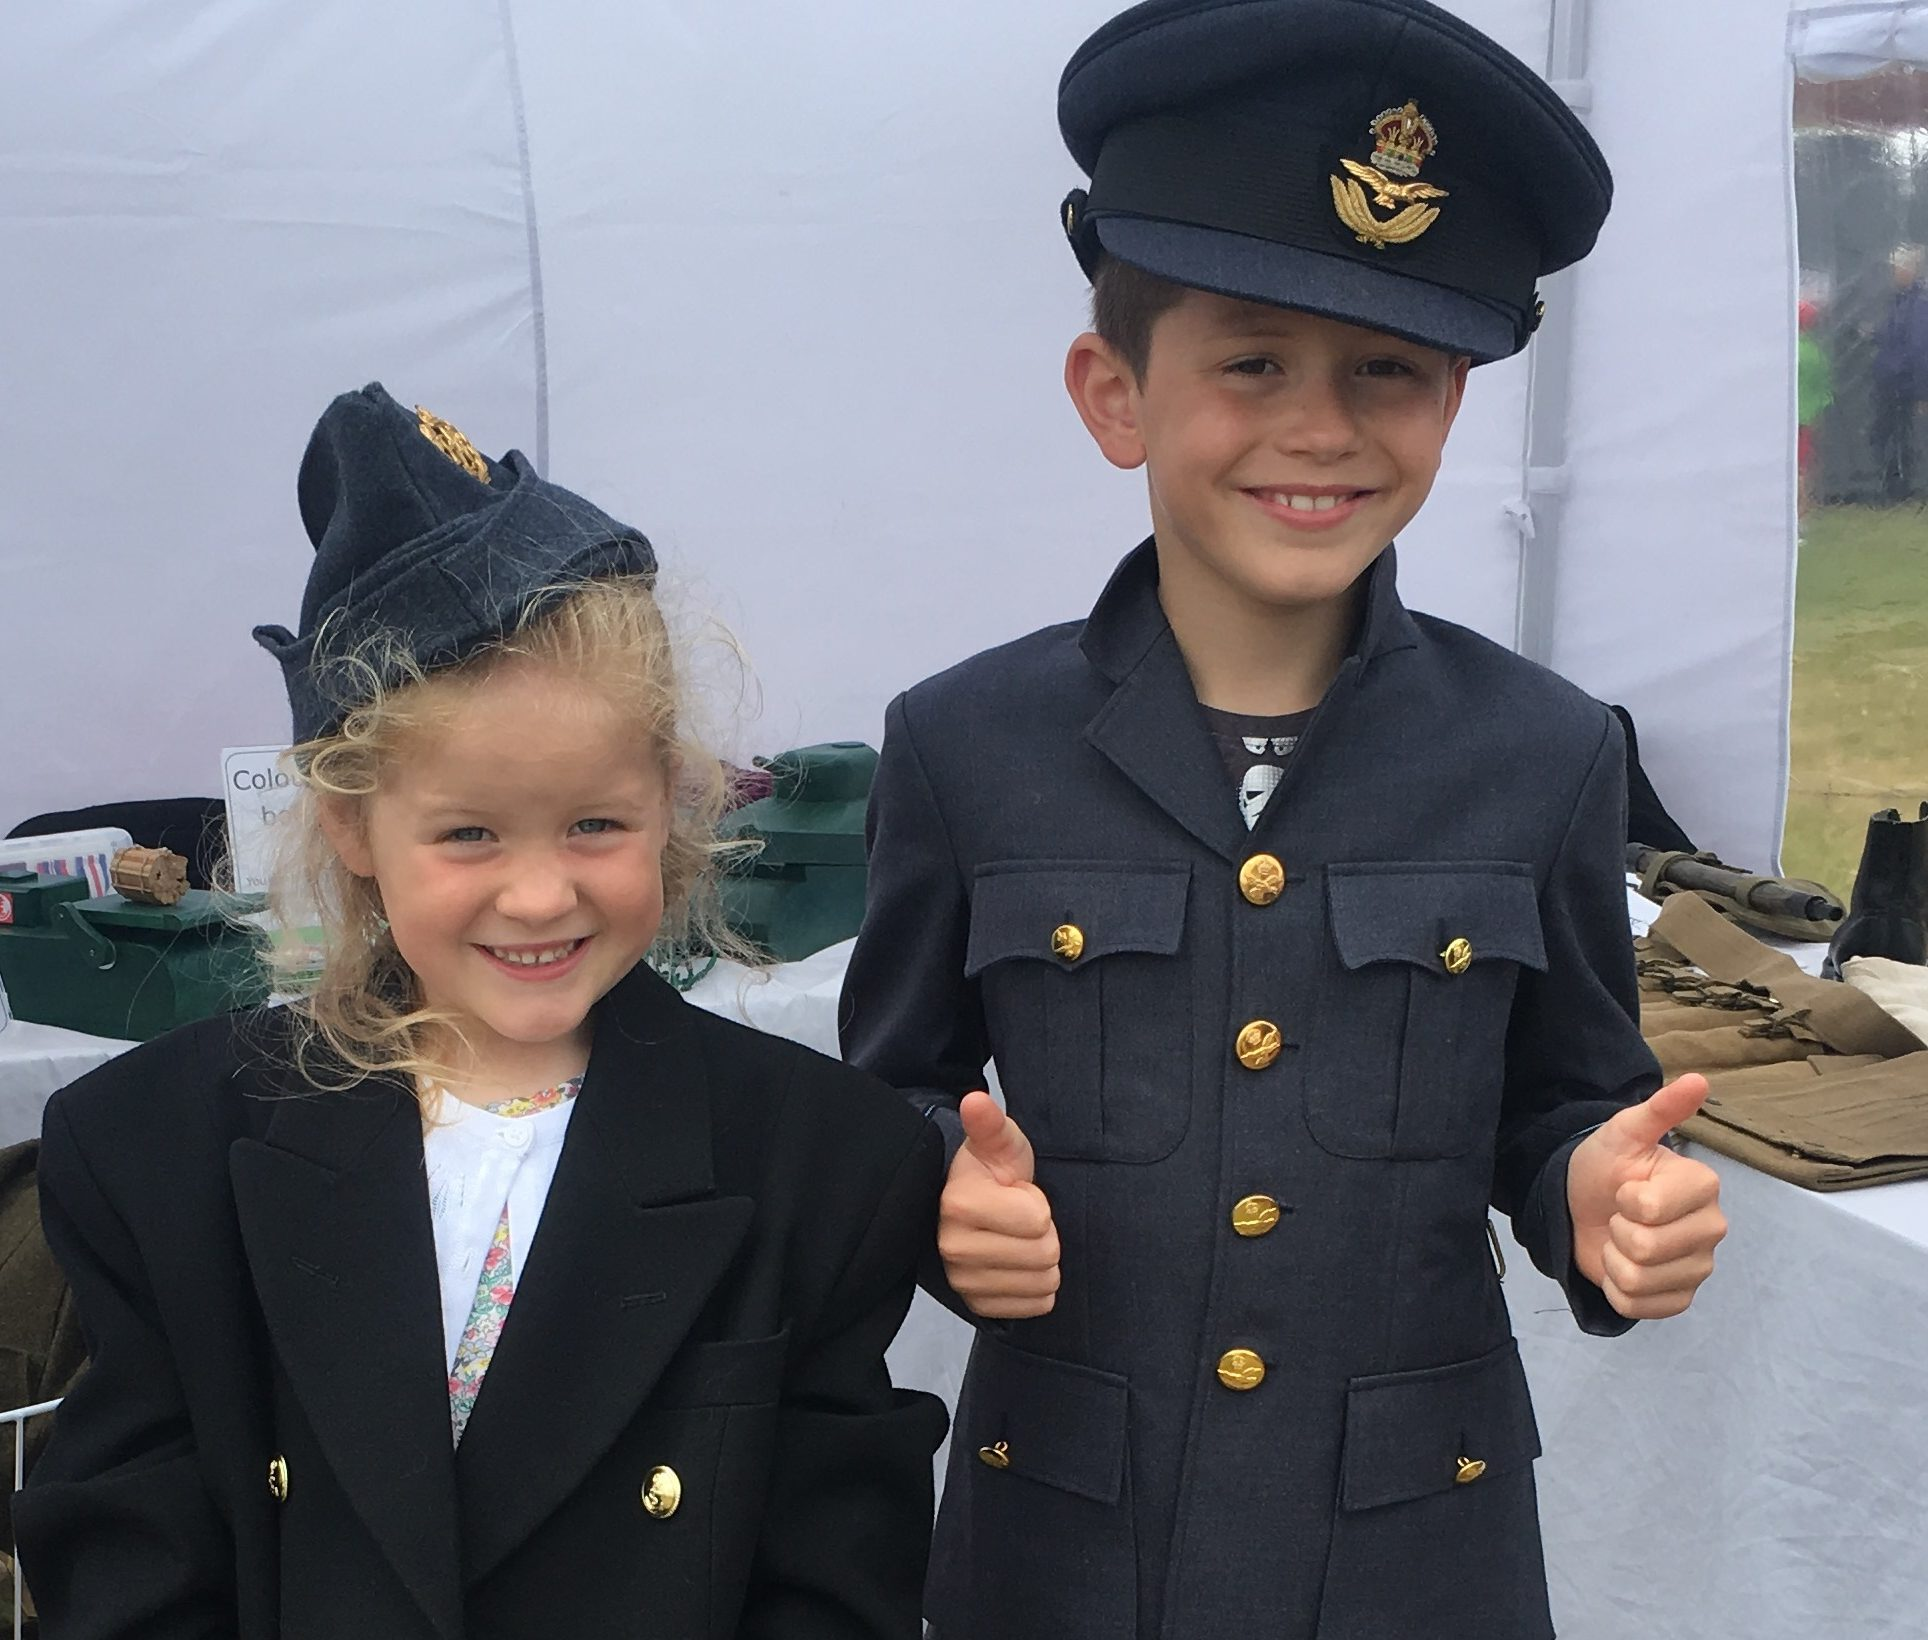 Children taking part in a pop up museum event